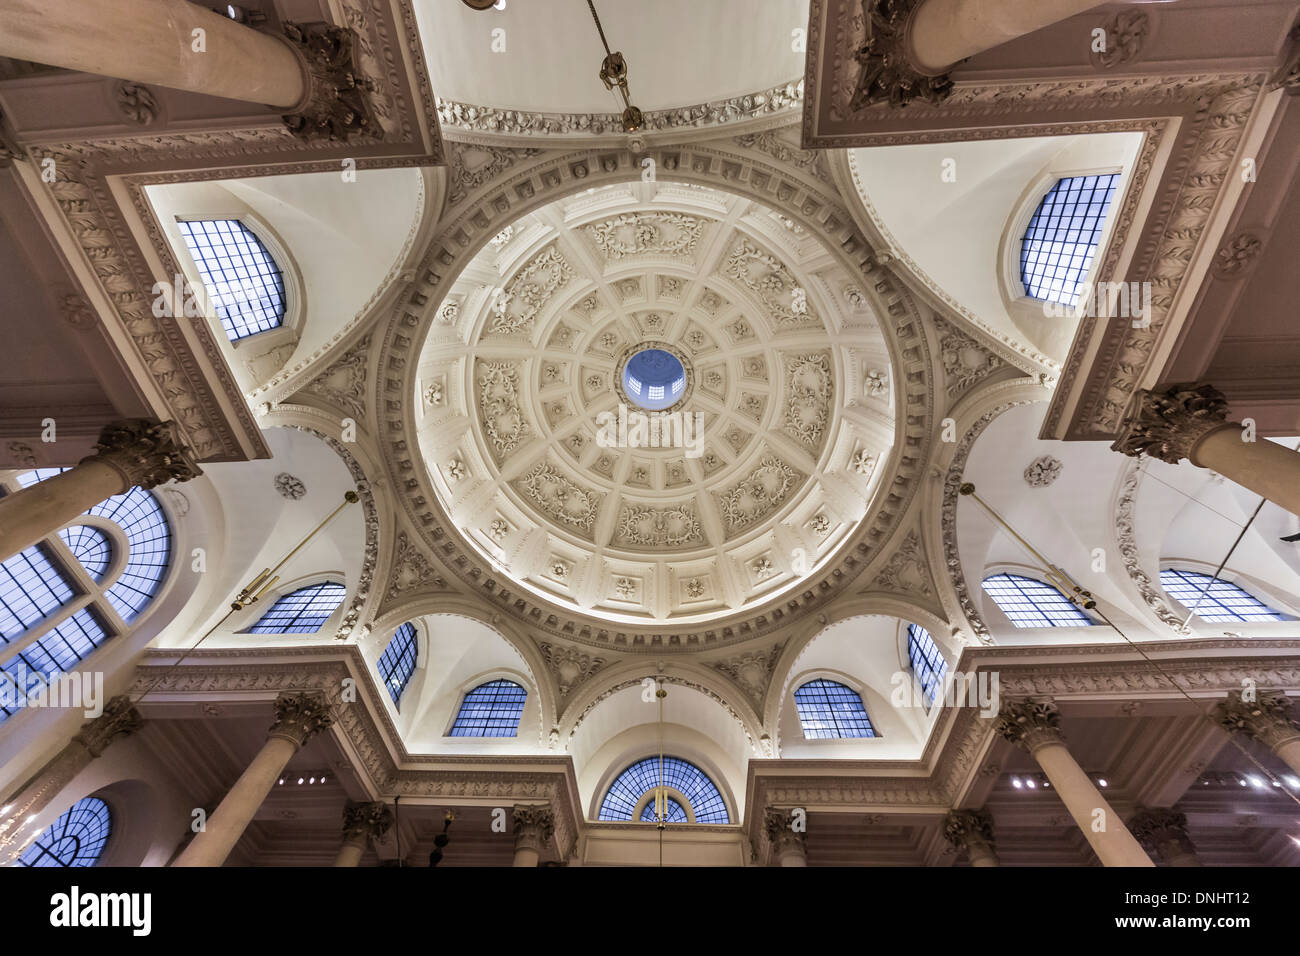 Stock Photo   The Church Of St Stephen Walbrook In The City Of London, With  Dome By Sir Christoper Wren